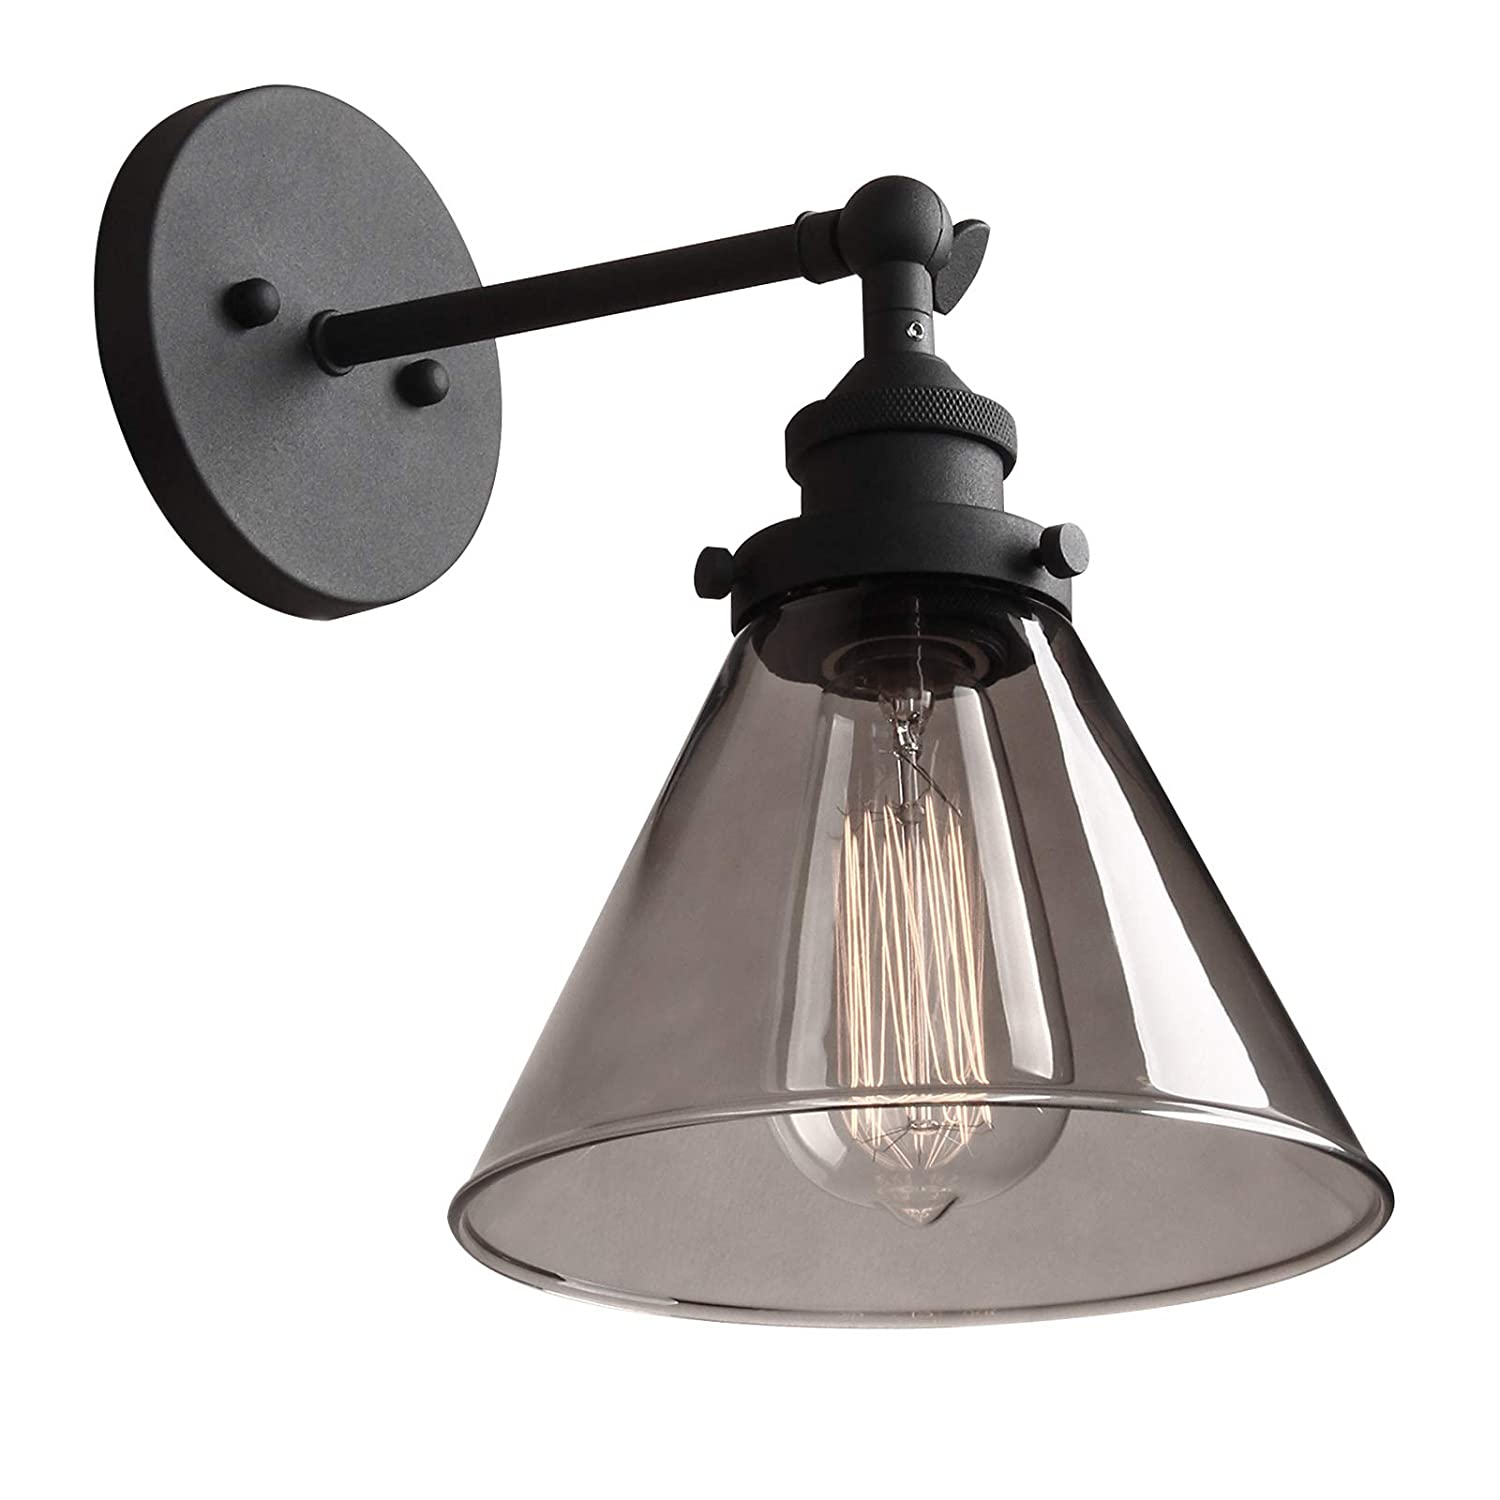 Phansthy edison industrial wall sconce 7 3 inch glass wall light fixture decorative lighting for kitchen living room gallery hallways 1 light grey